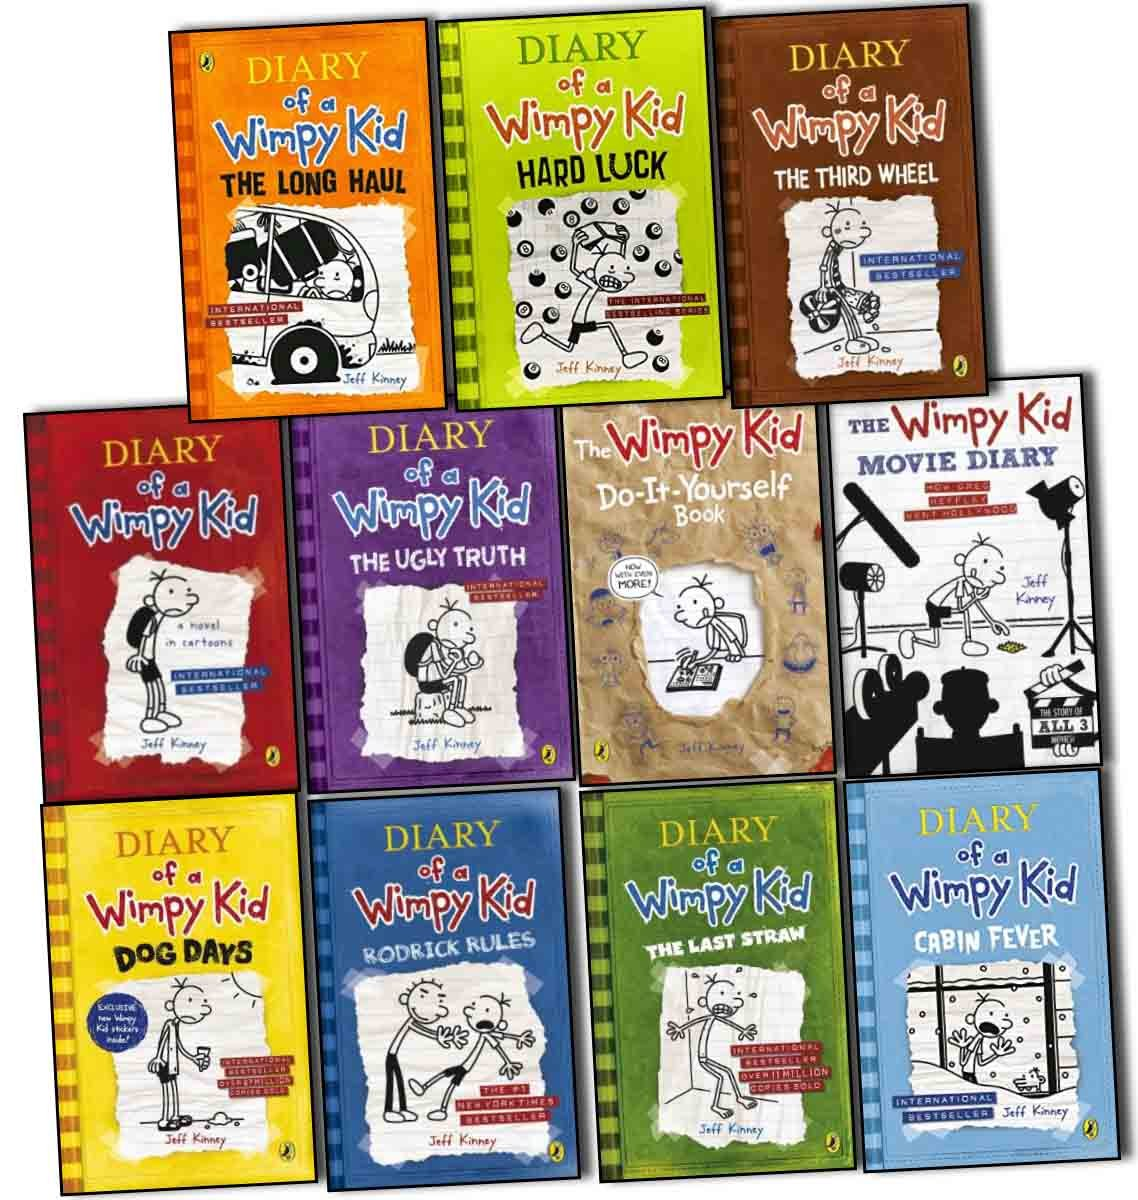 How to make the most of an unsolicited overly eager mentor essay book review diary of a wimpy kid by jeff kinney north wind s wikipedia diaryofawimpykid solutioingenieria Choice Image